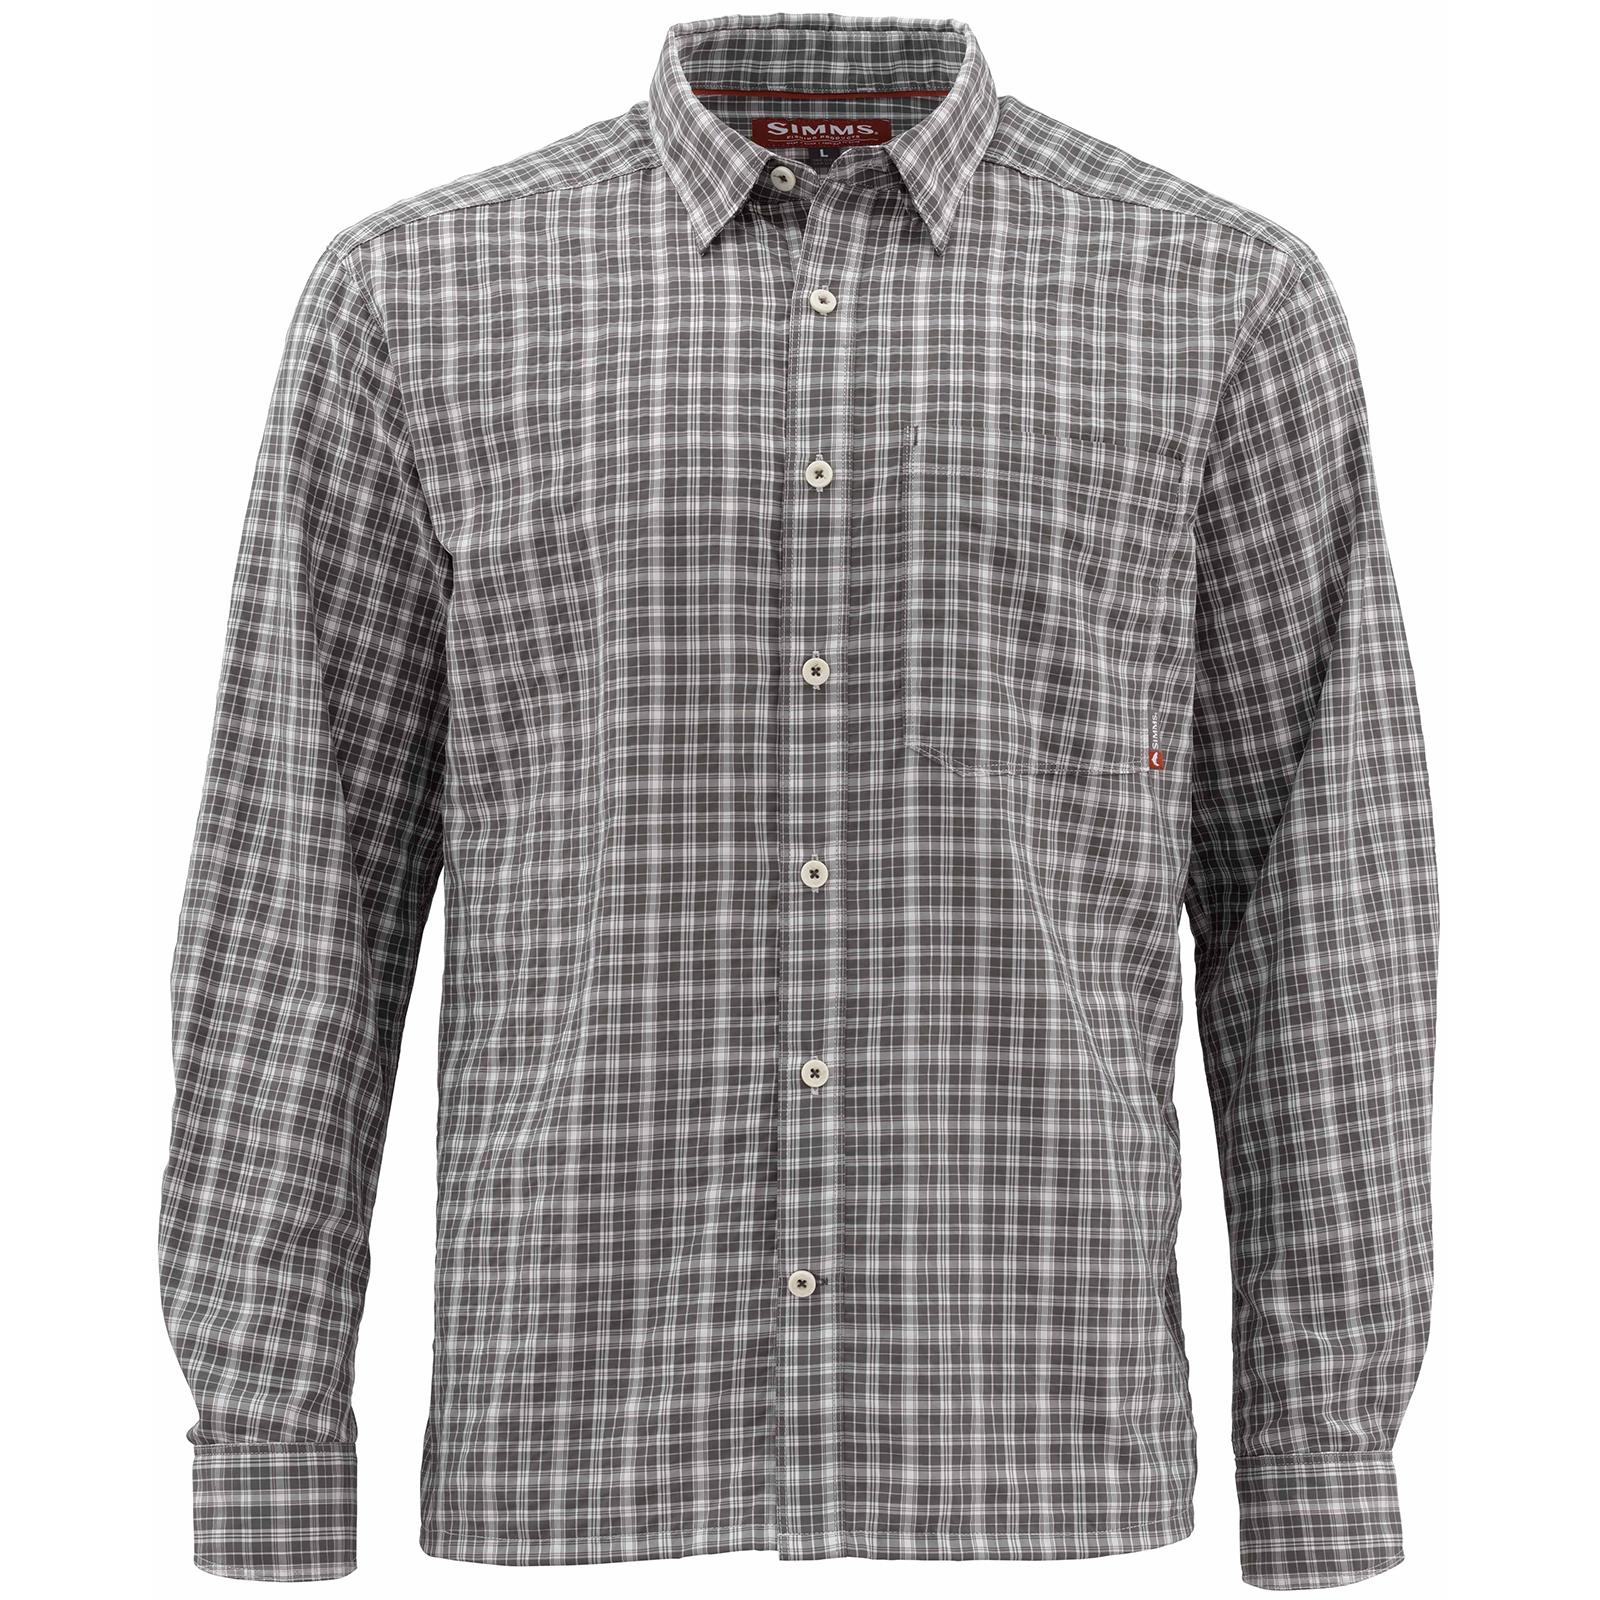 Simms Morada Long Sleeve Shirt